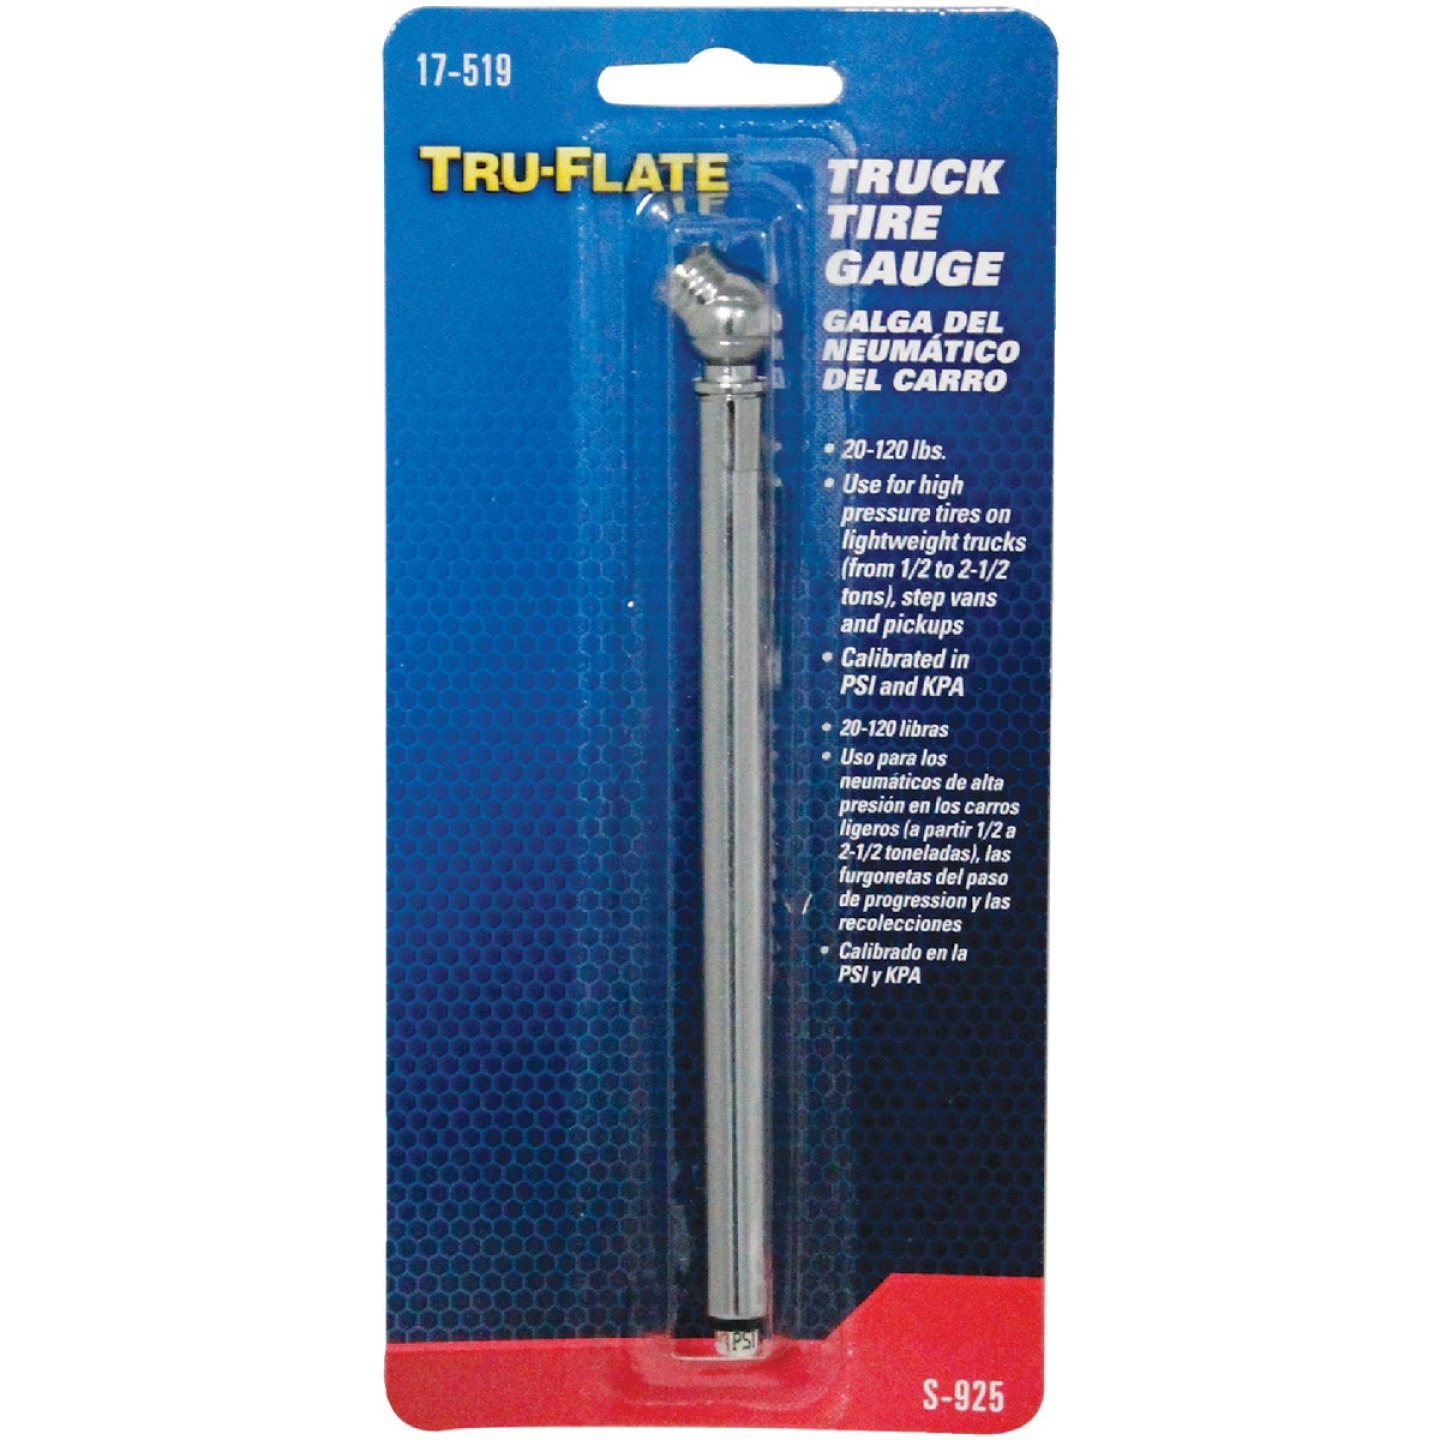 Tru-Flate 20-120 psi Chrome-Plated Truck Tire Gauge Image 2